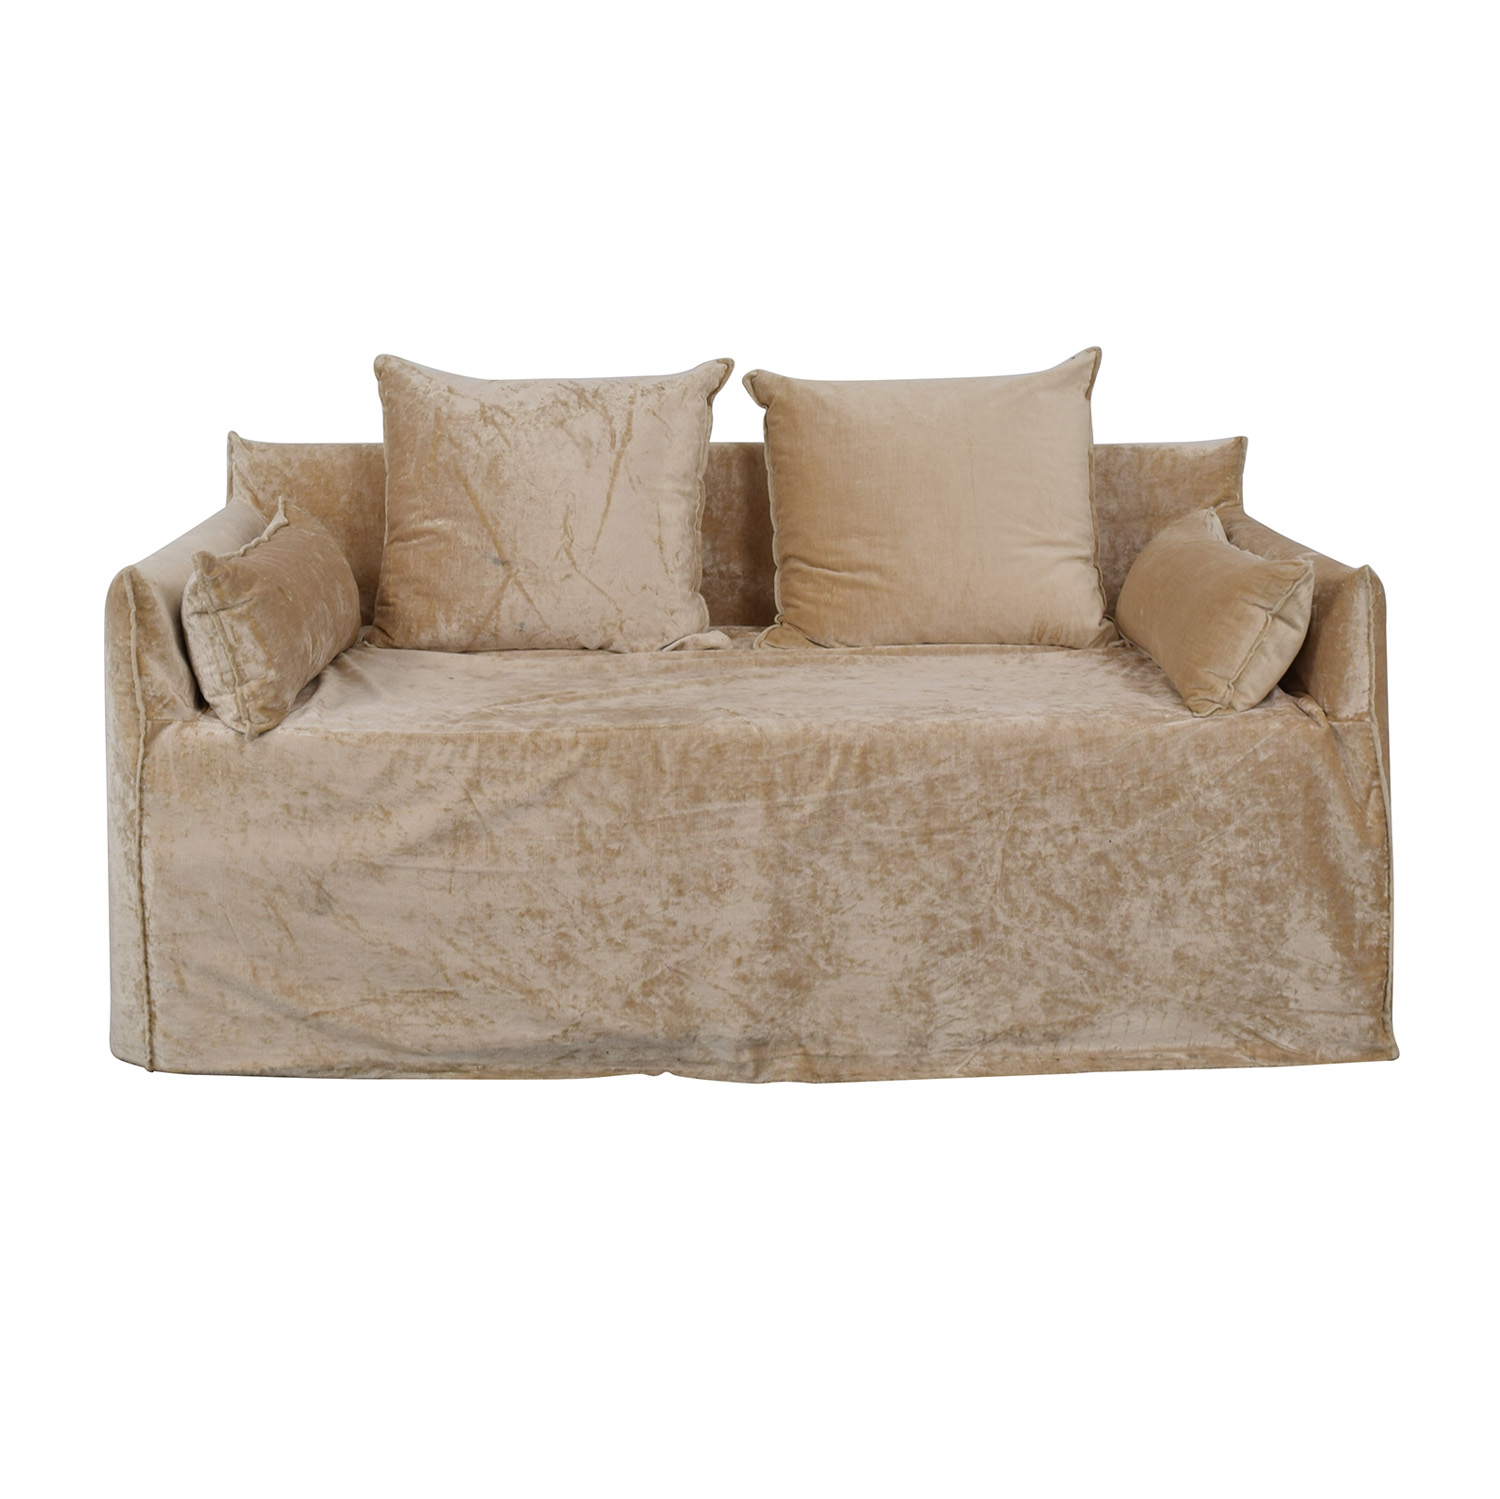 COCO-MAT Nafsika Sofa Bed / Classic Sofas